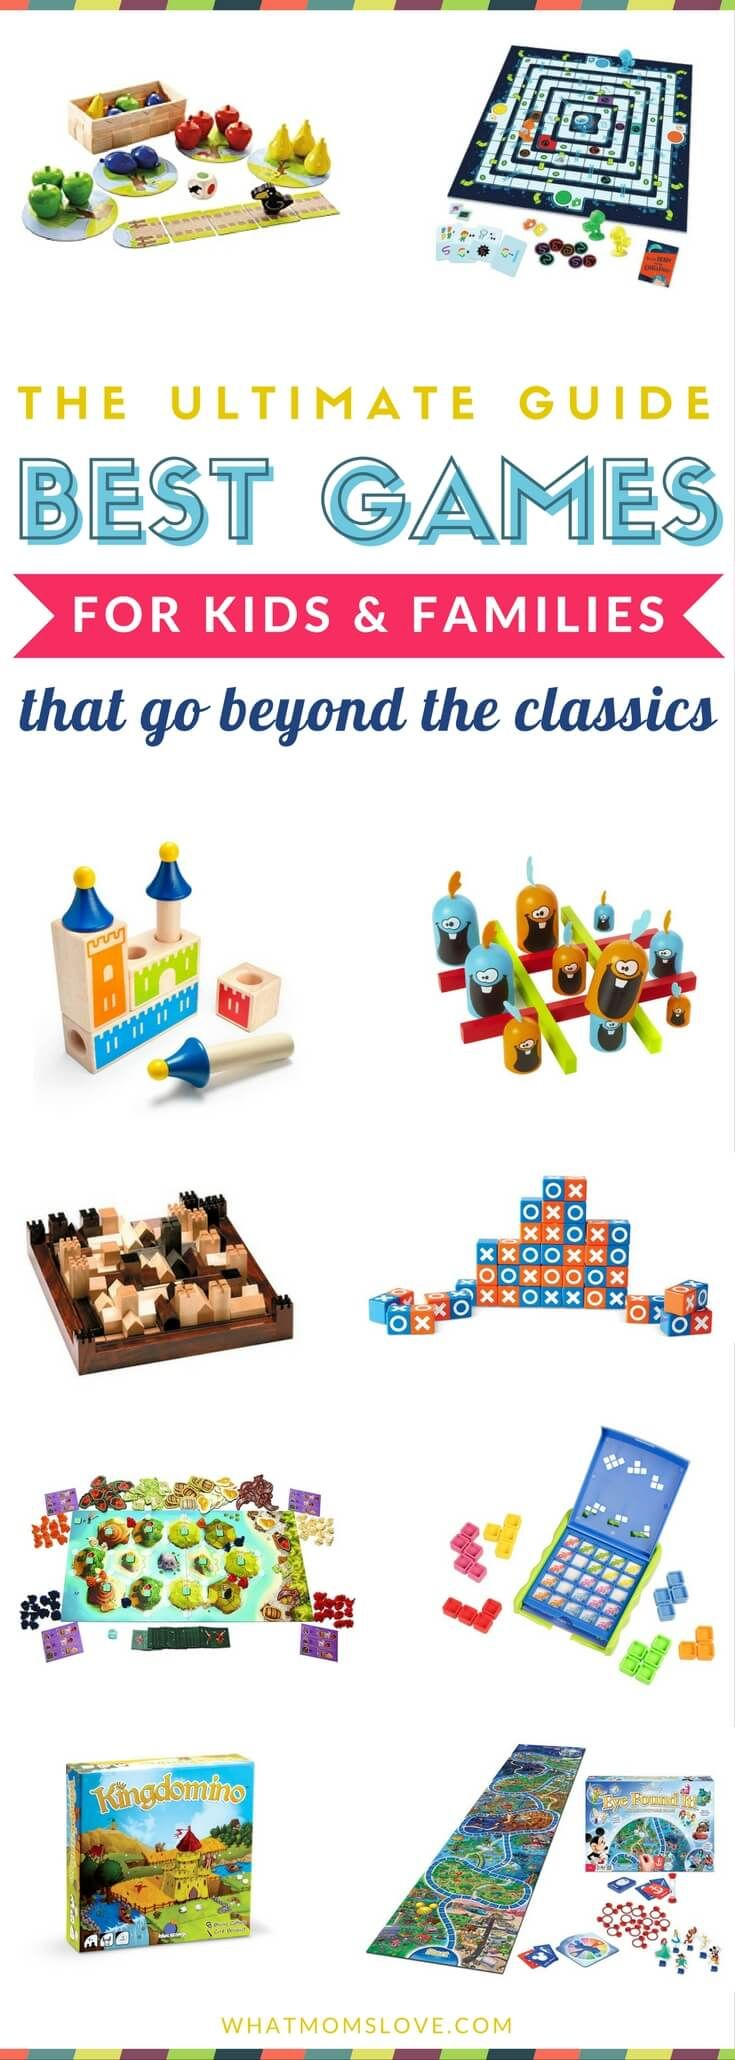 Epic guide to the best board games for kids - including best first games for toddlers, best single player games, & the best games for family game night.